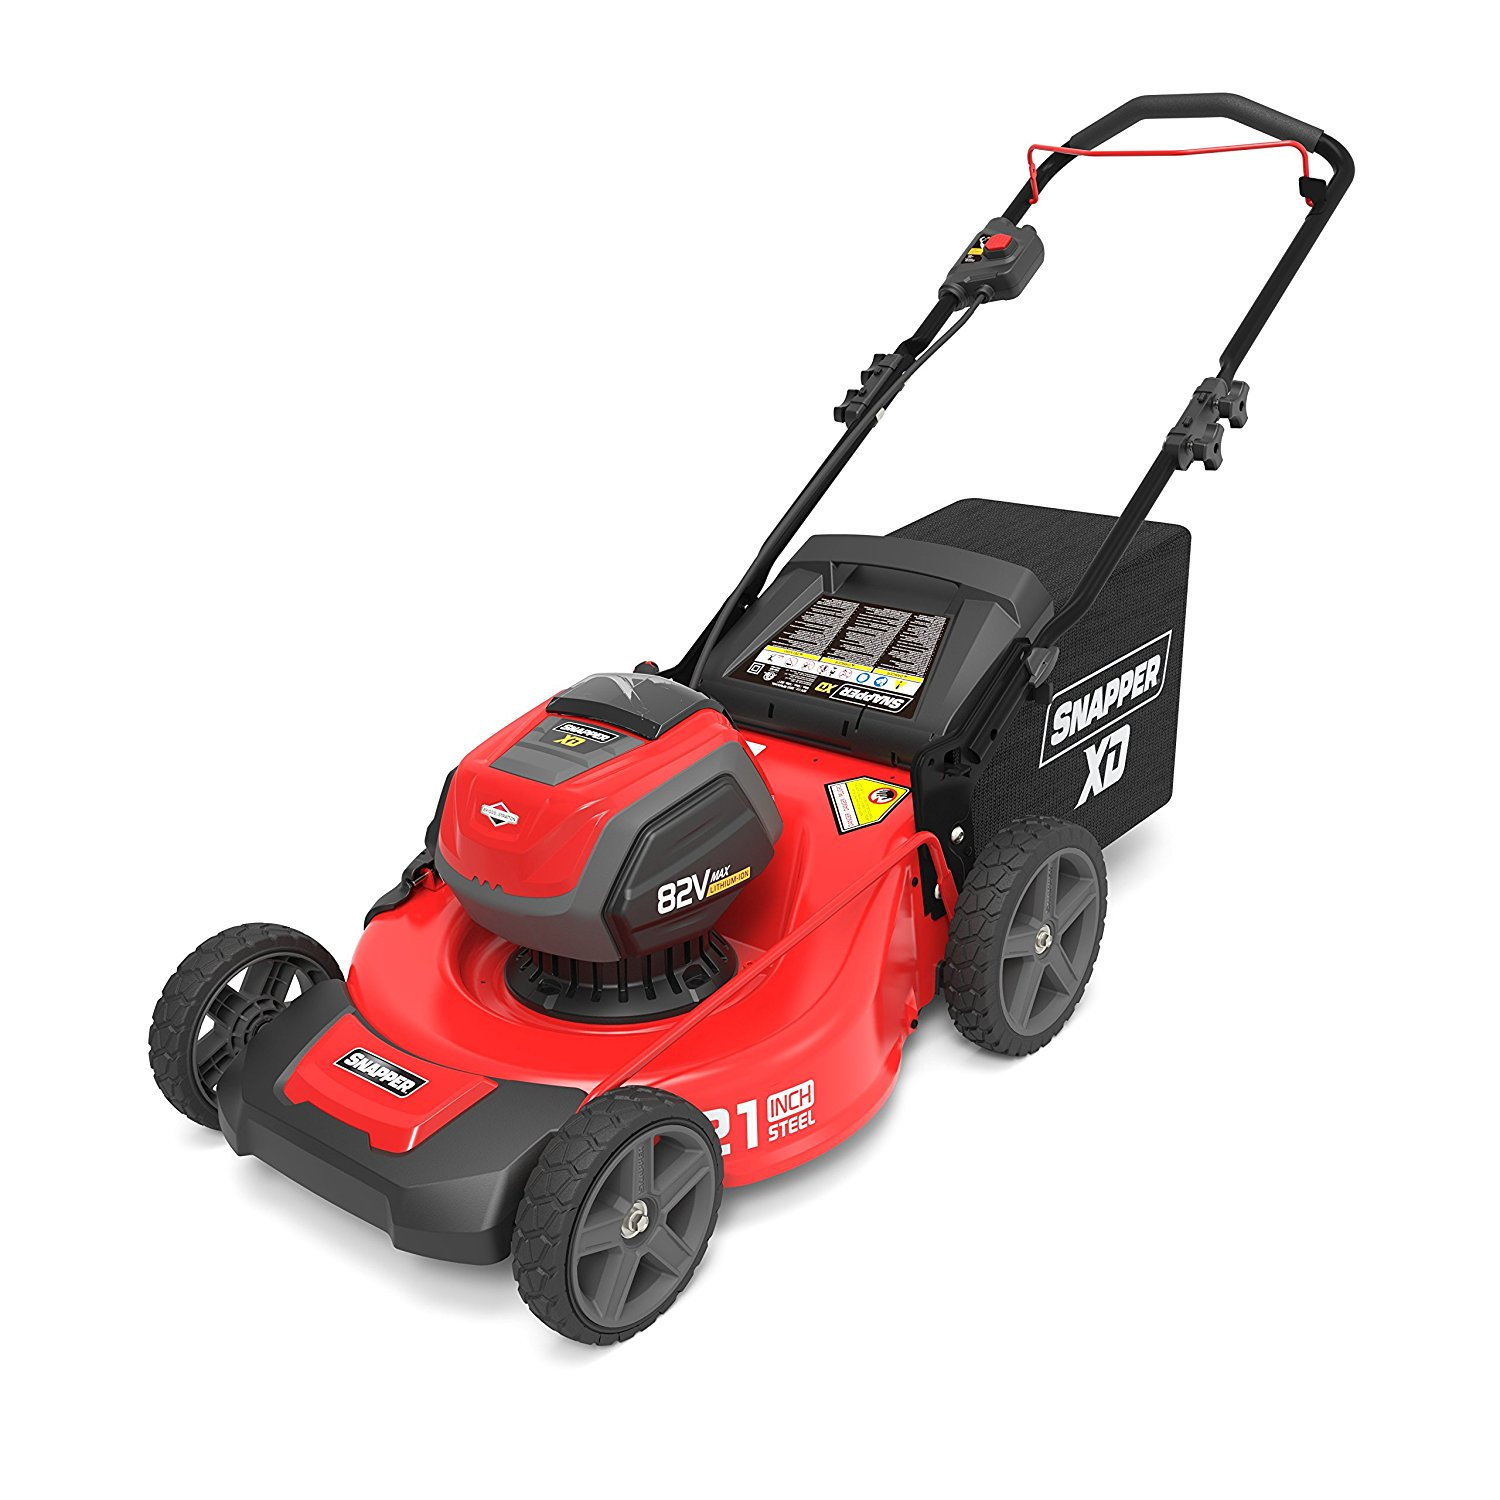 WM 21 82V Snapper XD (Push Mower)